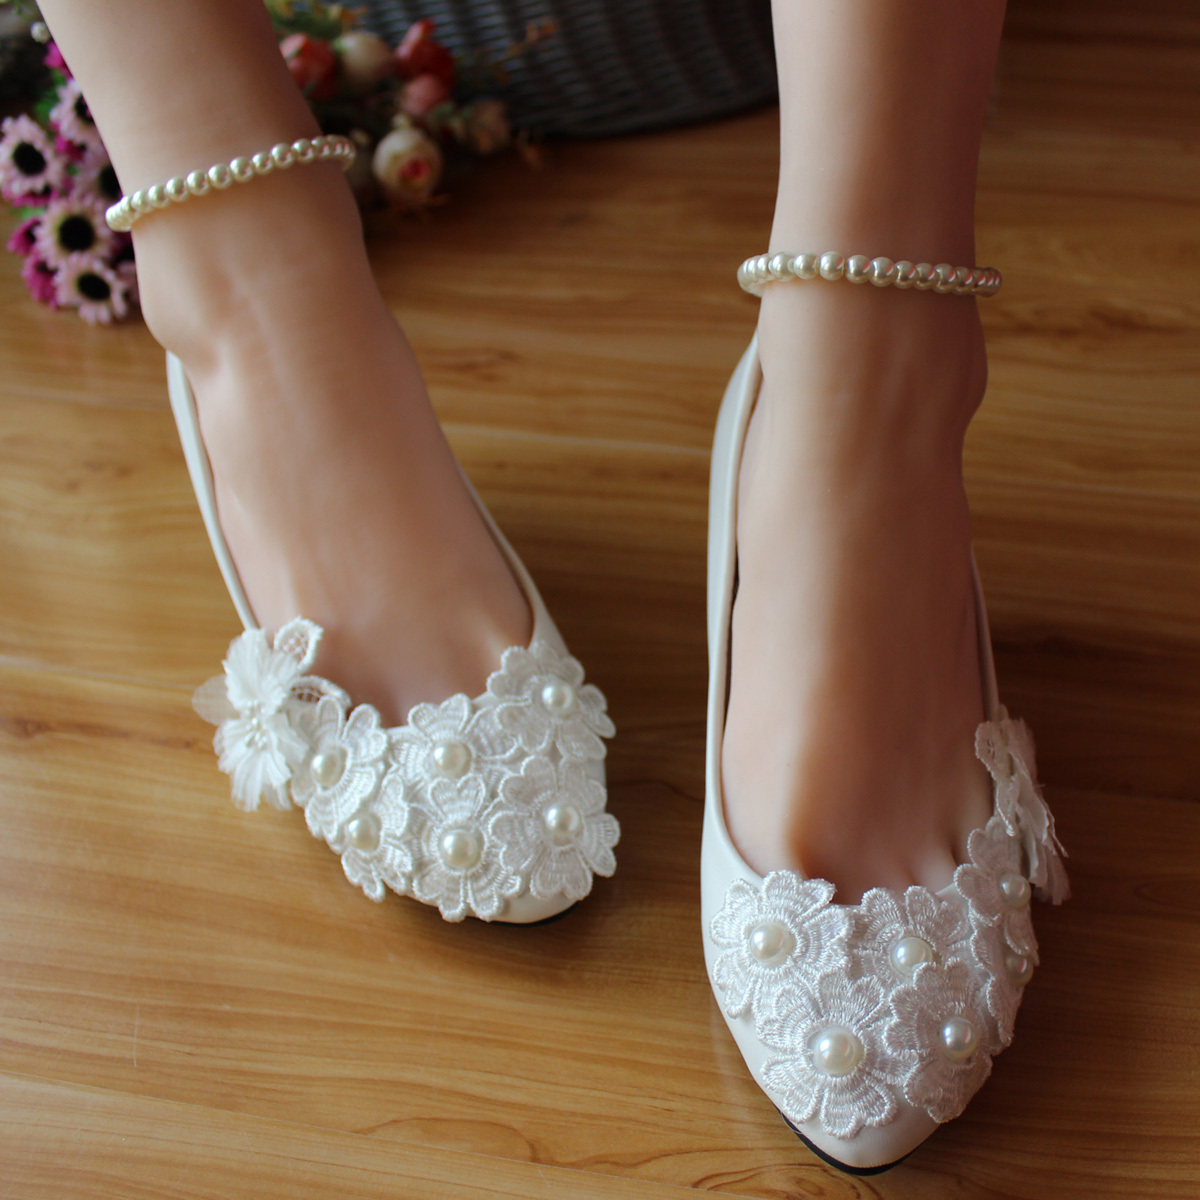 4400 buy now httpviieqjustgoodvigitempt cheap flower box shoes buy quality flowering tree white flowers directly from china flower girl shoes suppliers izmirmasajfo Images